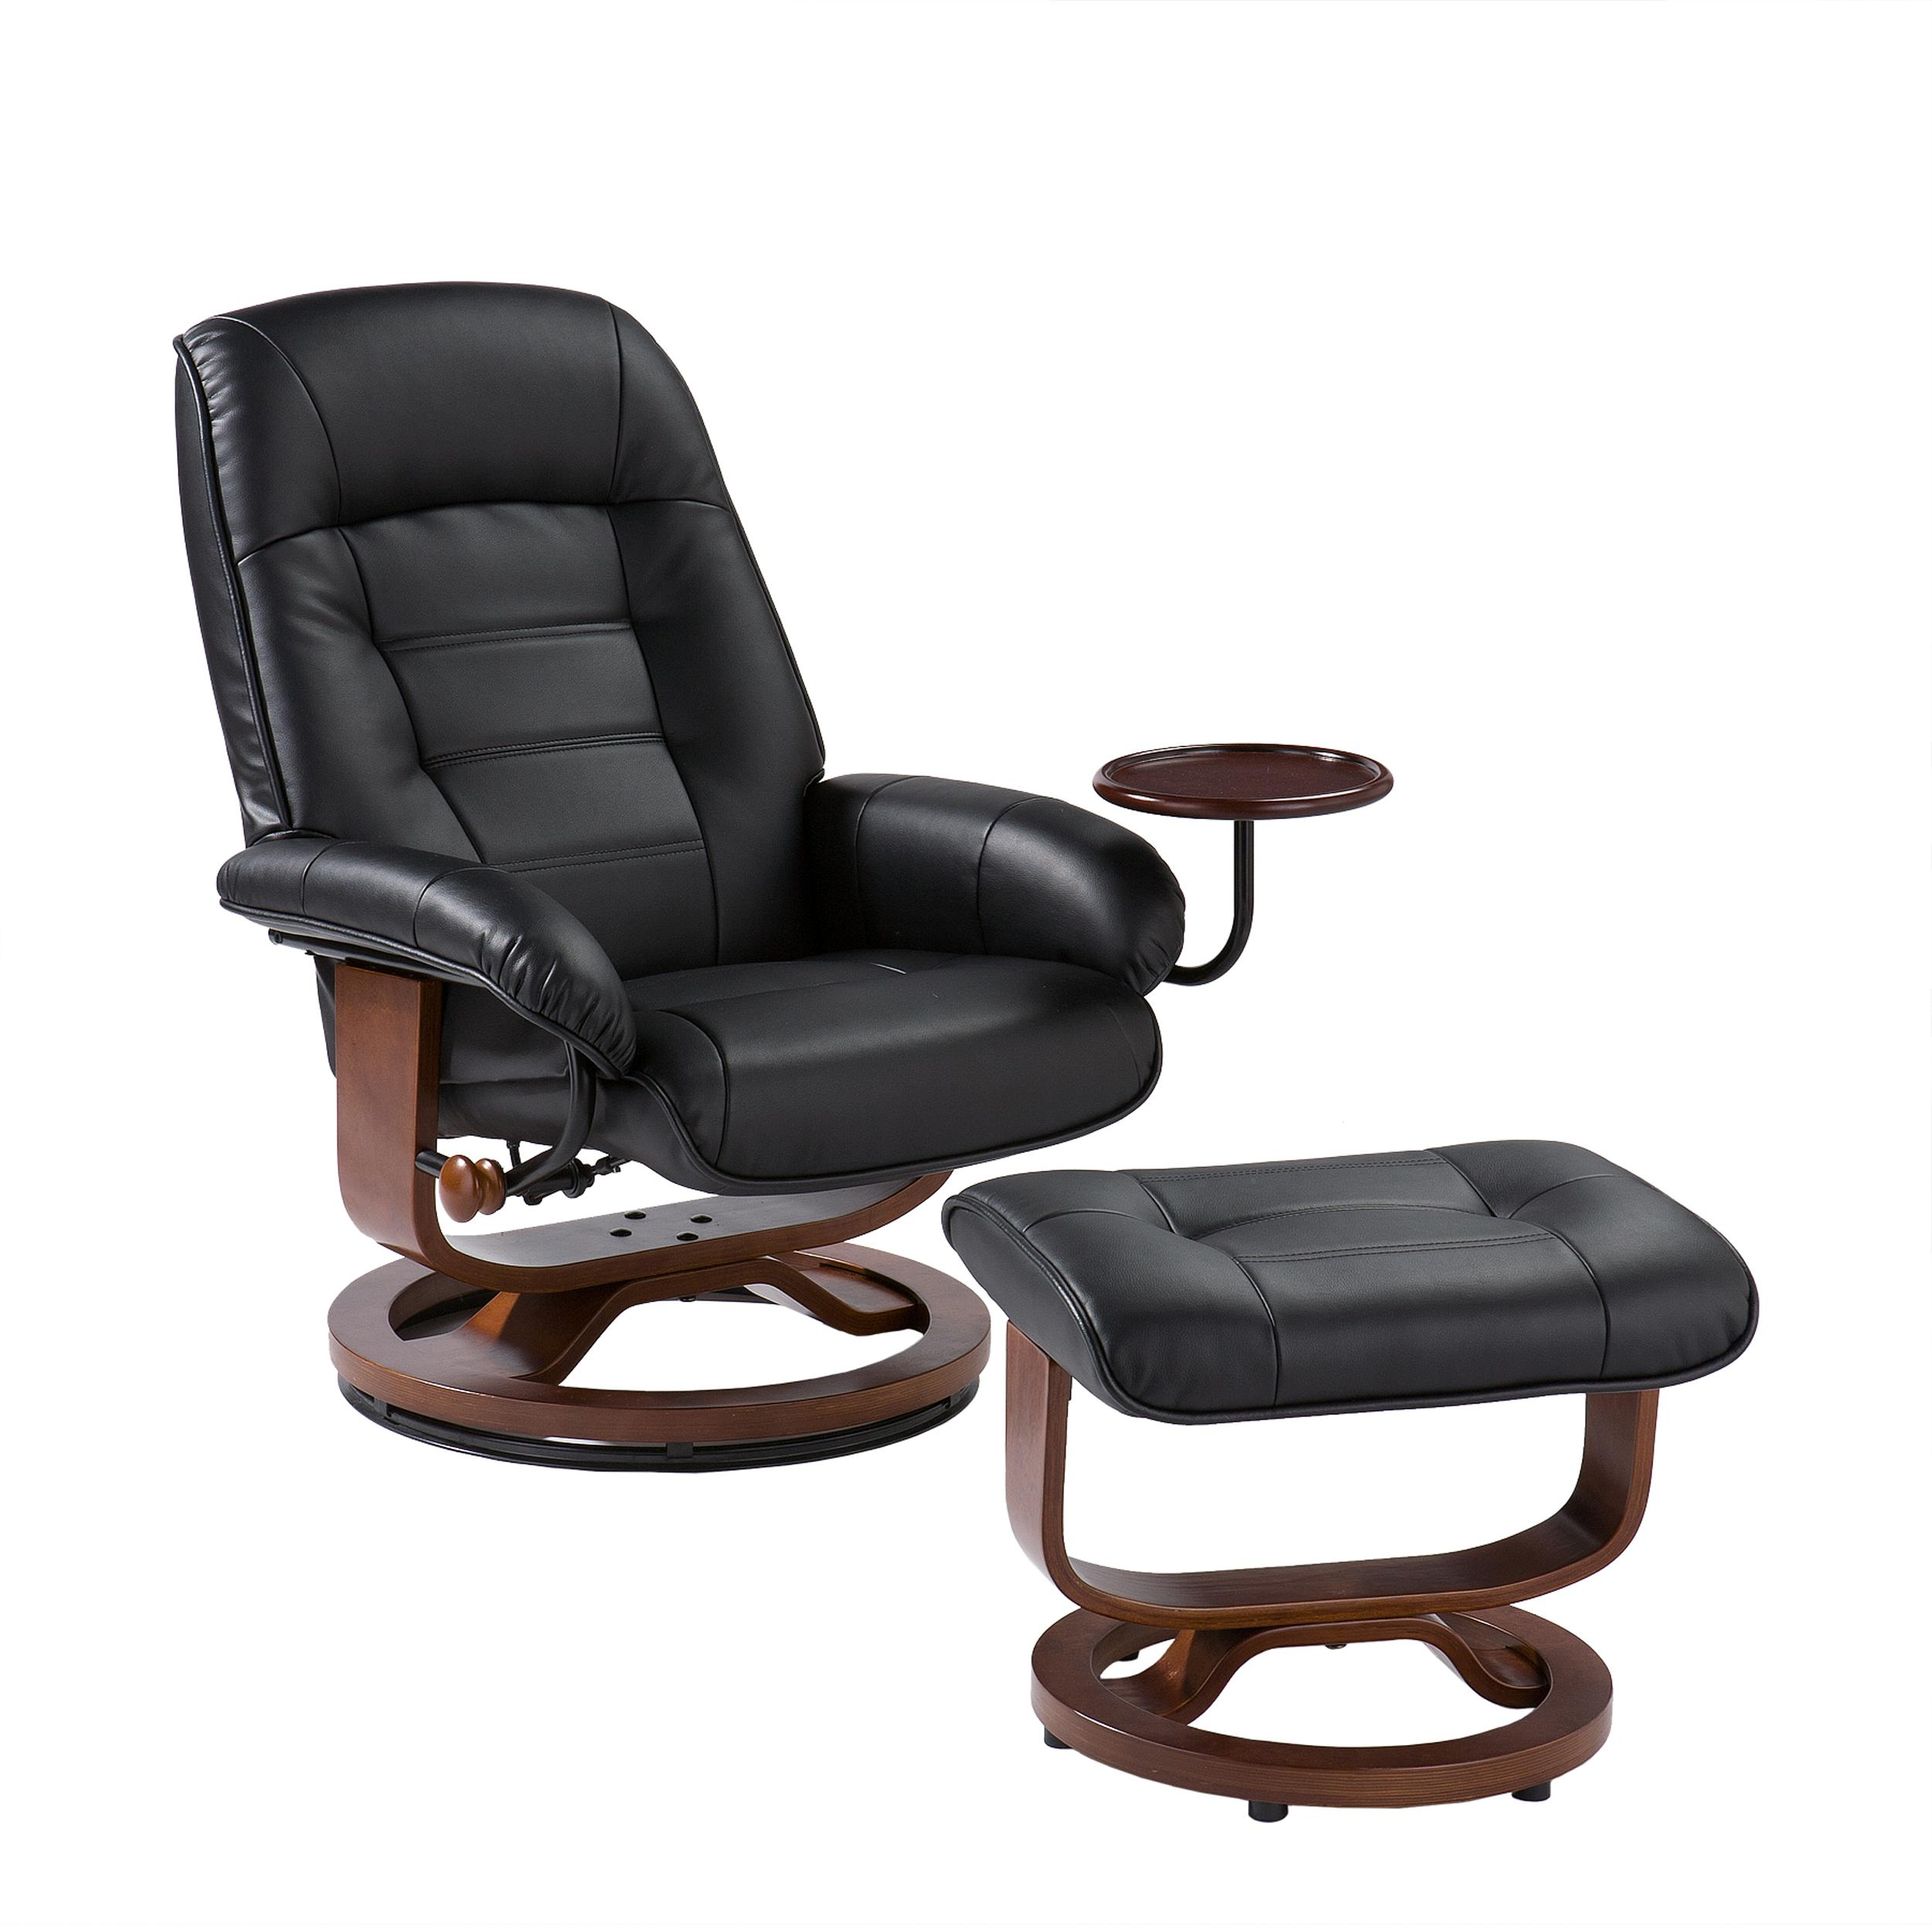 Furniture: Alluring Leather Chair And Ottoman For Cozy Home Part 43